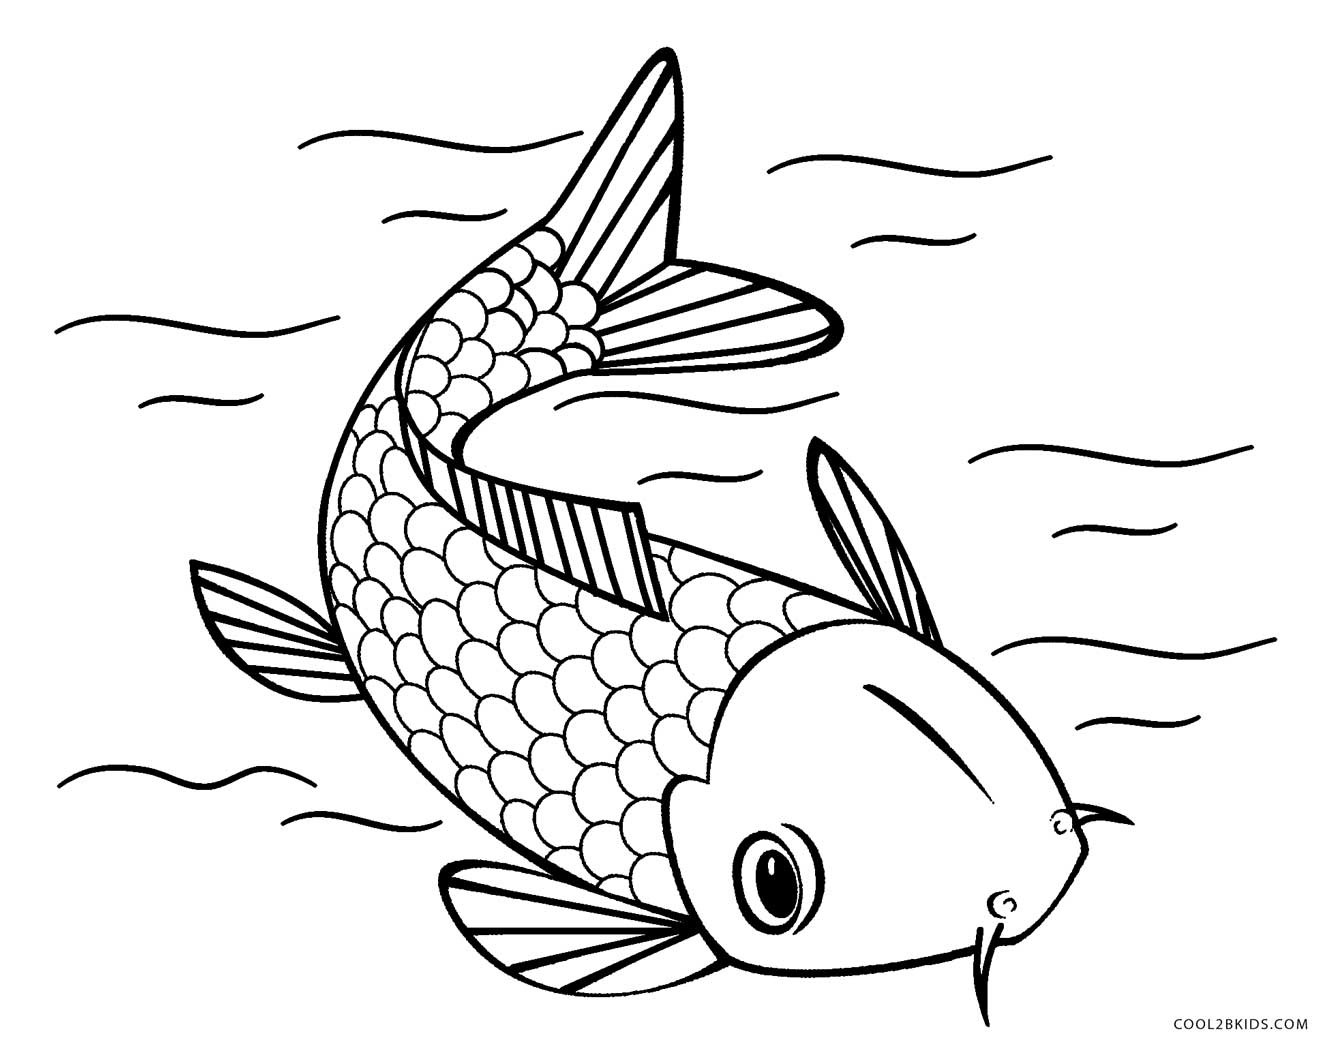 1339x1050 Koi Fish Coloring Page Free Printable Within Pages